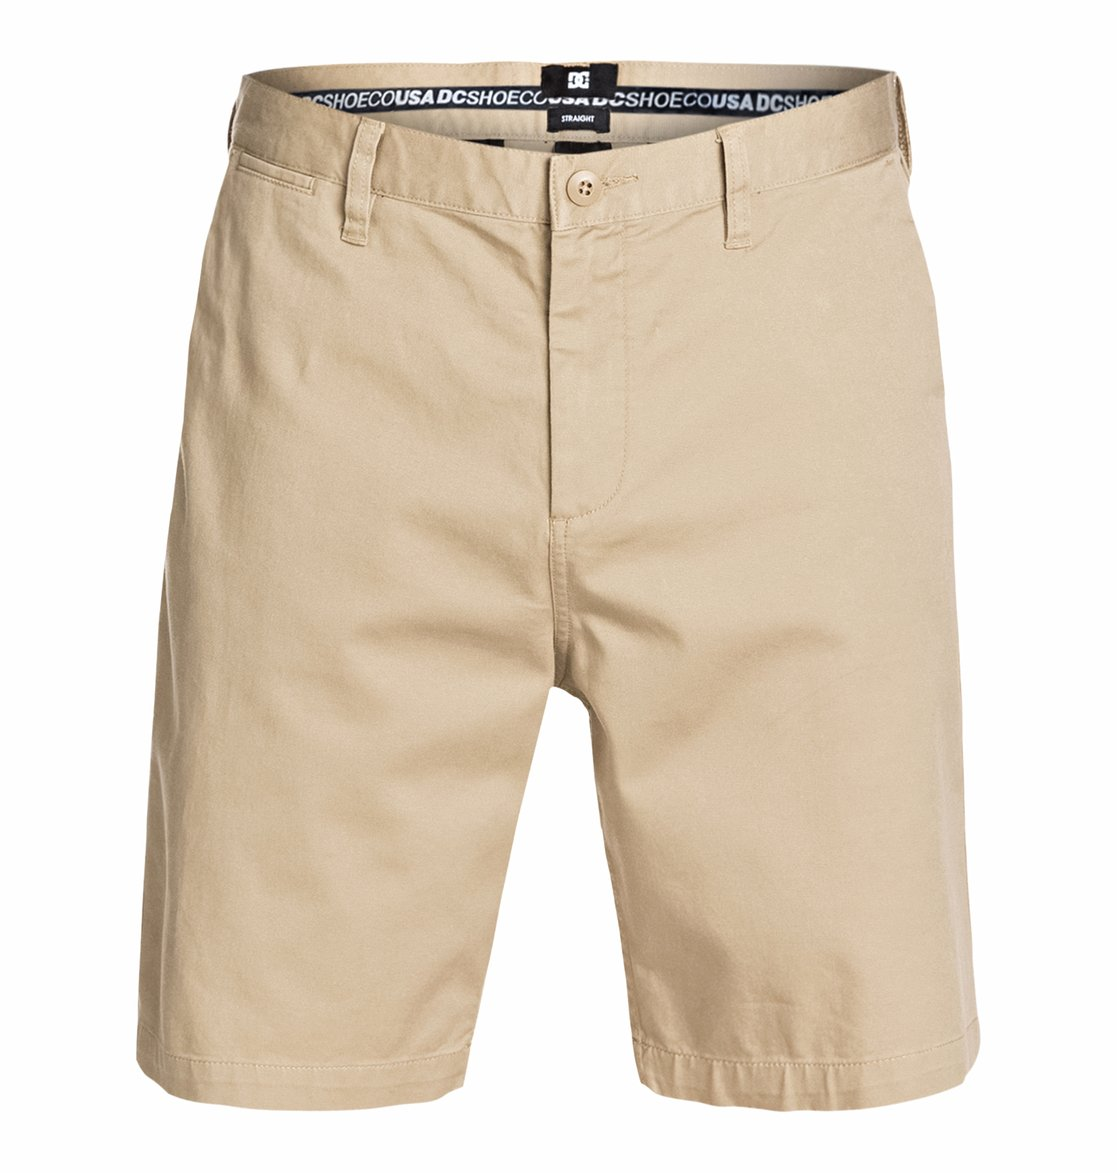 Worker Straight 20.5 Shorts - Dcshoes����� ������� ���� Worker Straight 20.5 Shorts �� DC Shoes � ������� �� ��������� ����� 2015�. ��������������: ������ � ������� ���������� �����, ��������� �������� �������, ������� �� ������.<br>